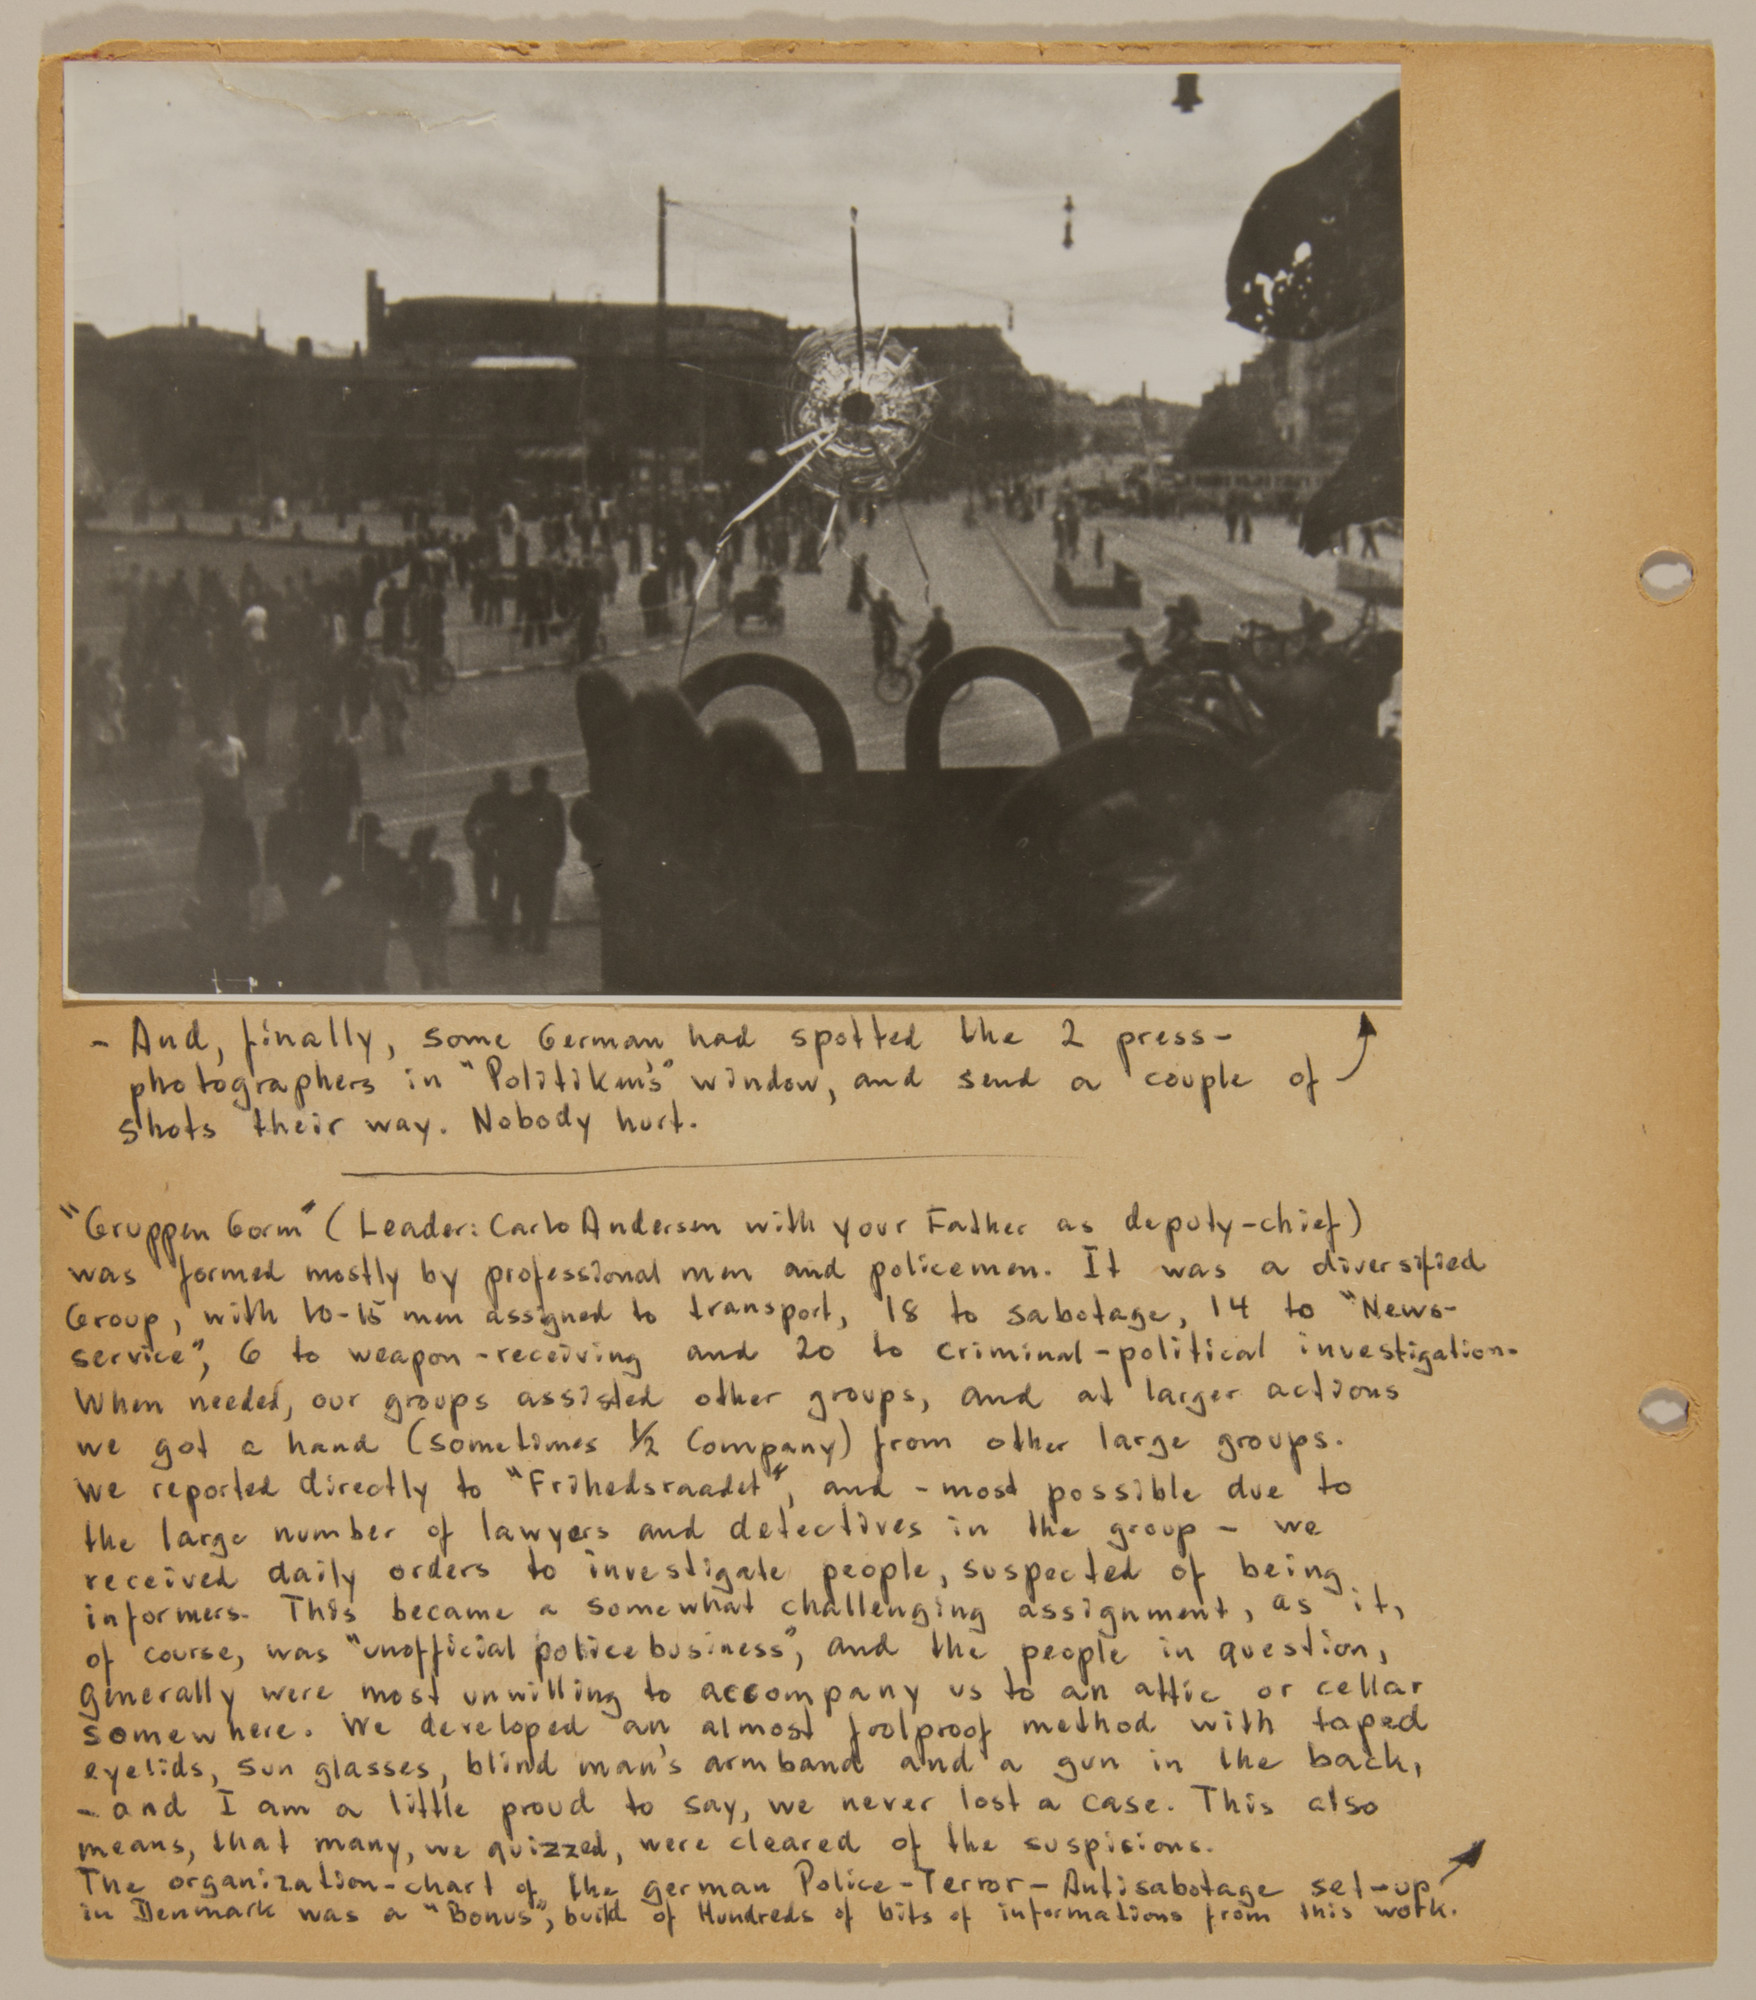 Page from volume four of a set of scrapbooks compiled by Bjorn Sibbern, a Danish policeman and resistance member, documenting the German occupation of Denmark.  This page shows a photograph of a the car of a press photographer with a bullet hole through its windshield.